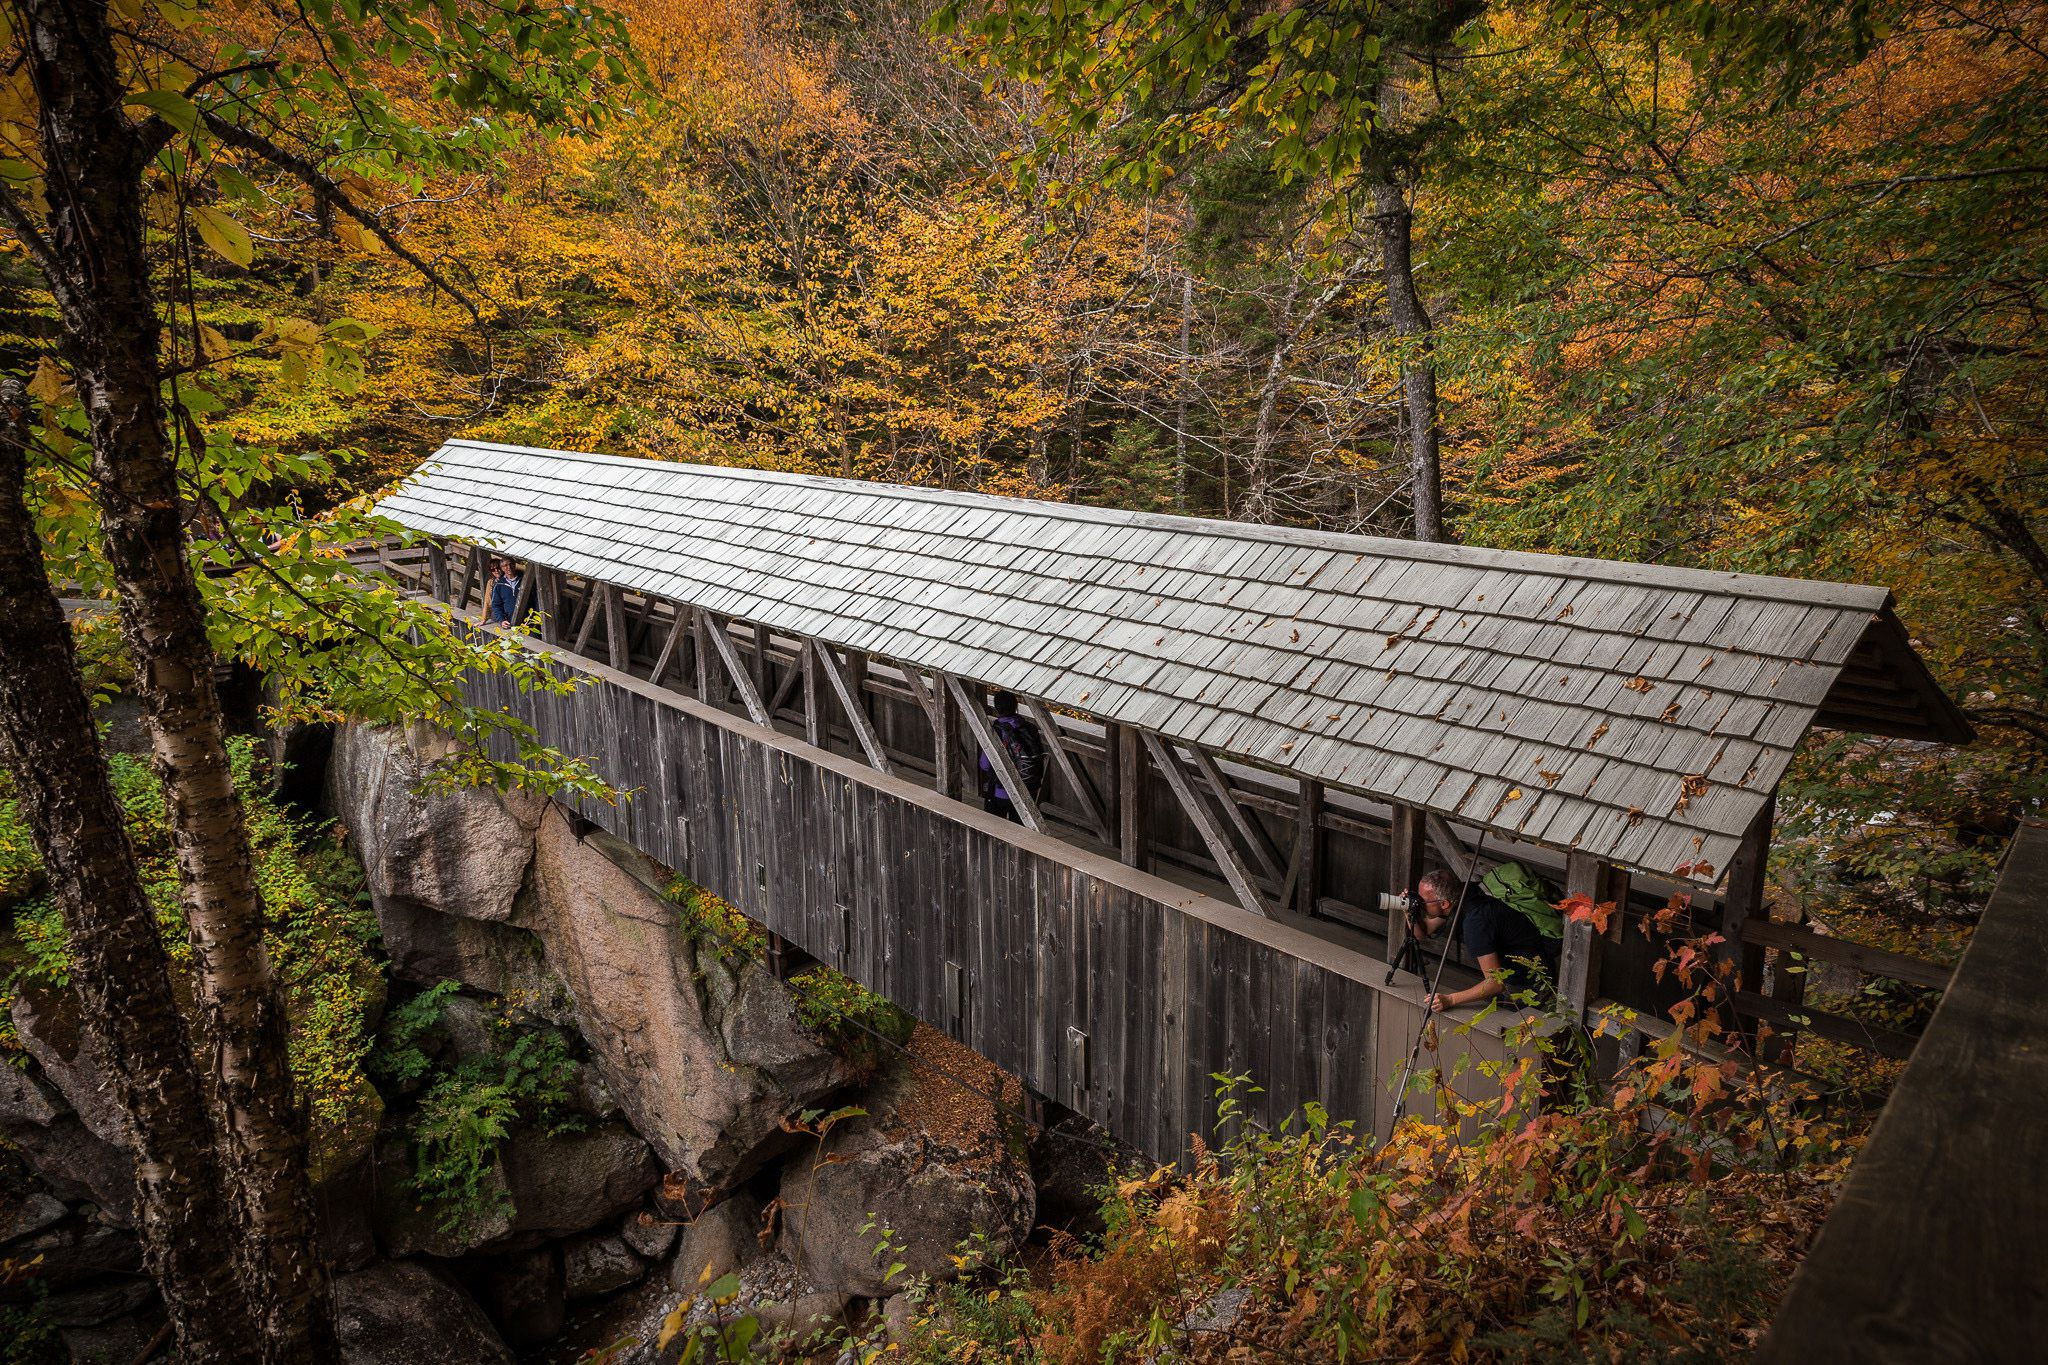 The Coolest Covered Bridges in New Hampshire